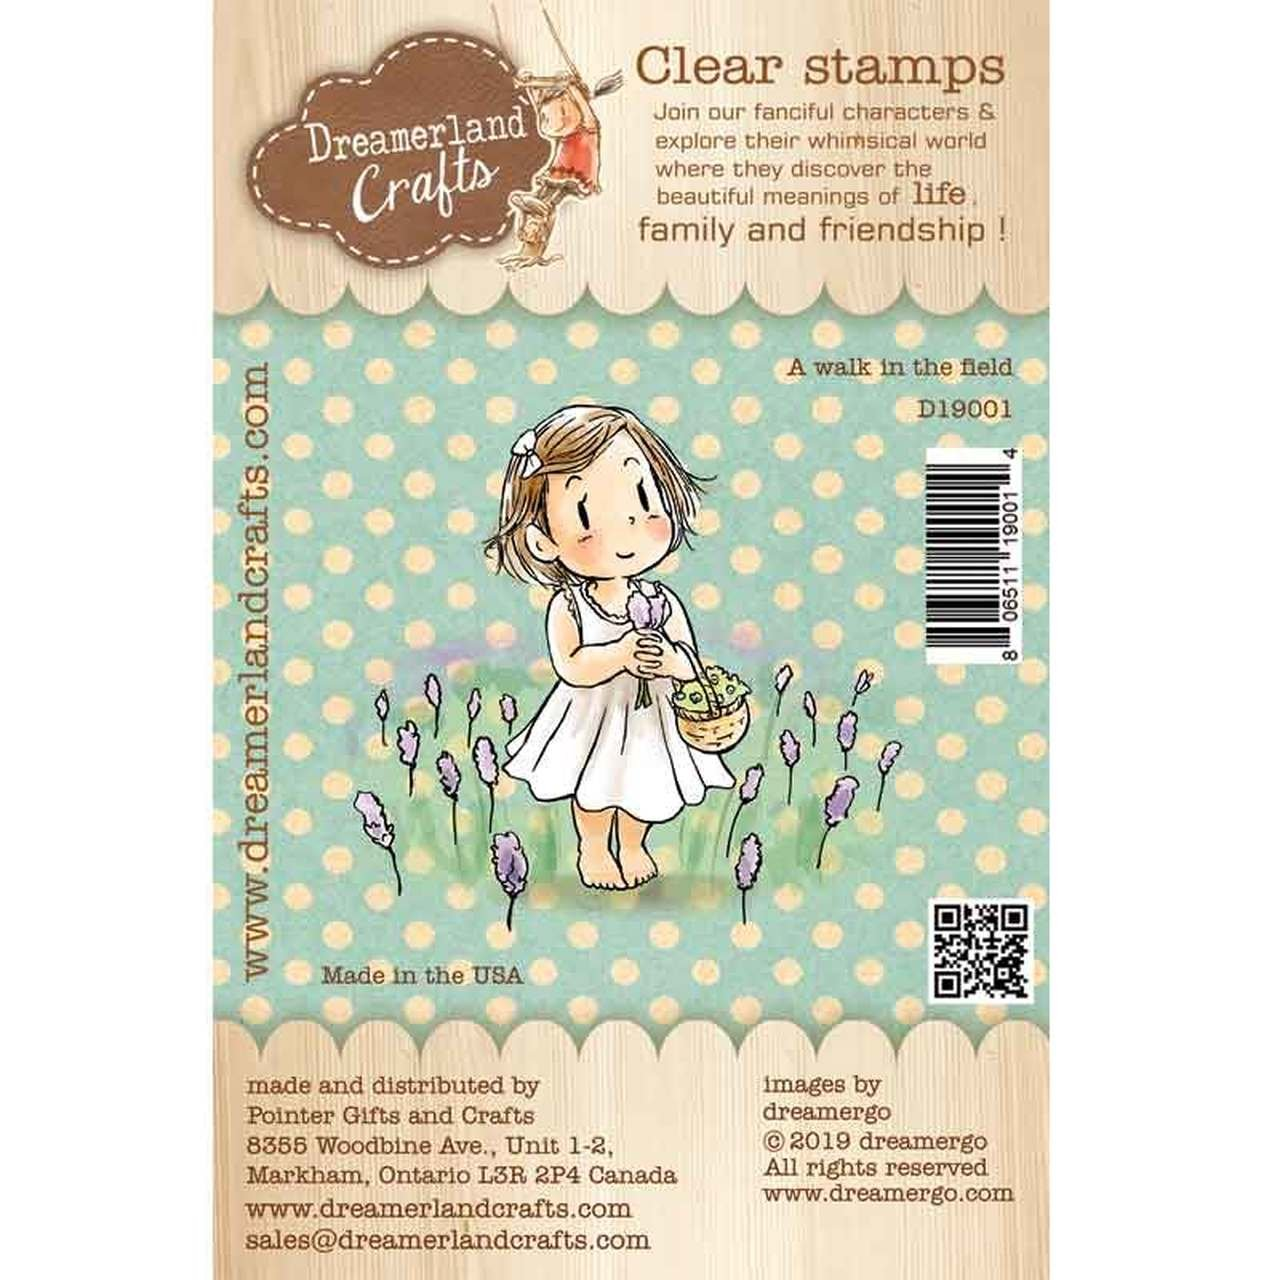 Dreamerland Crafts - A Walk in the Field Stamp